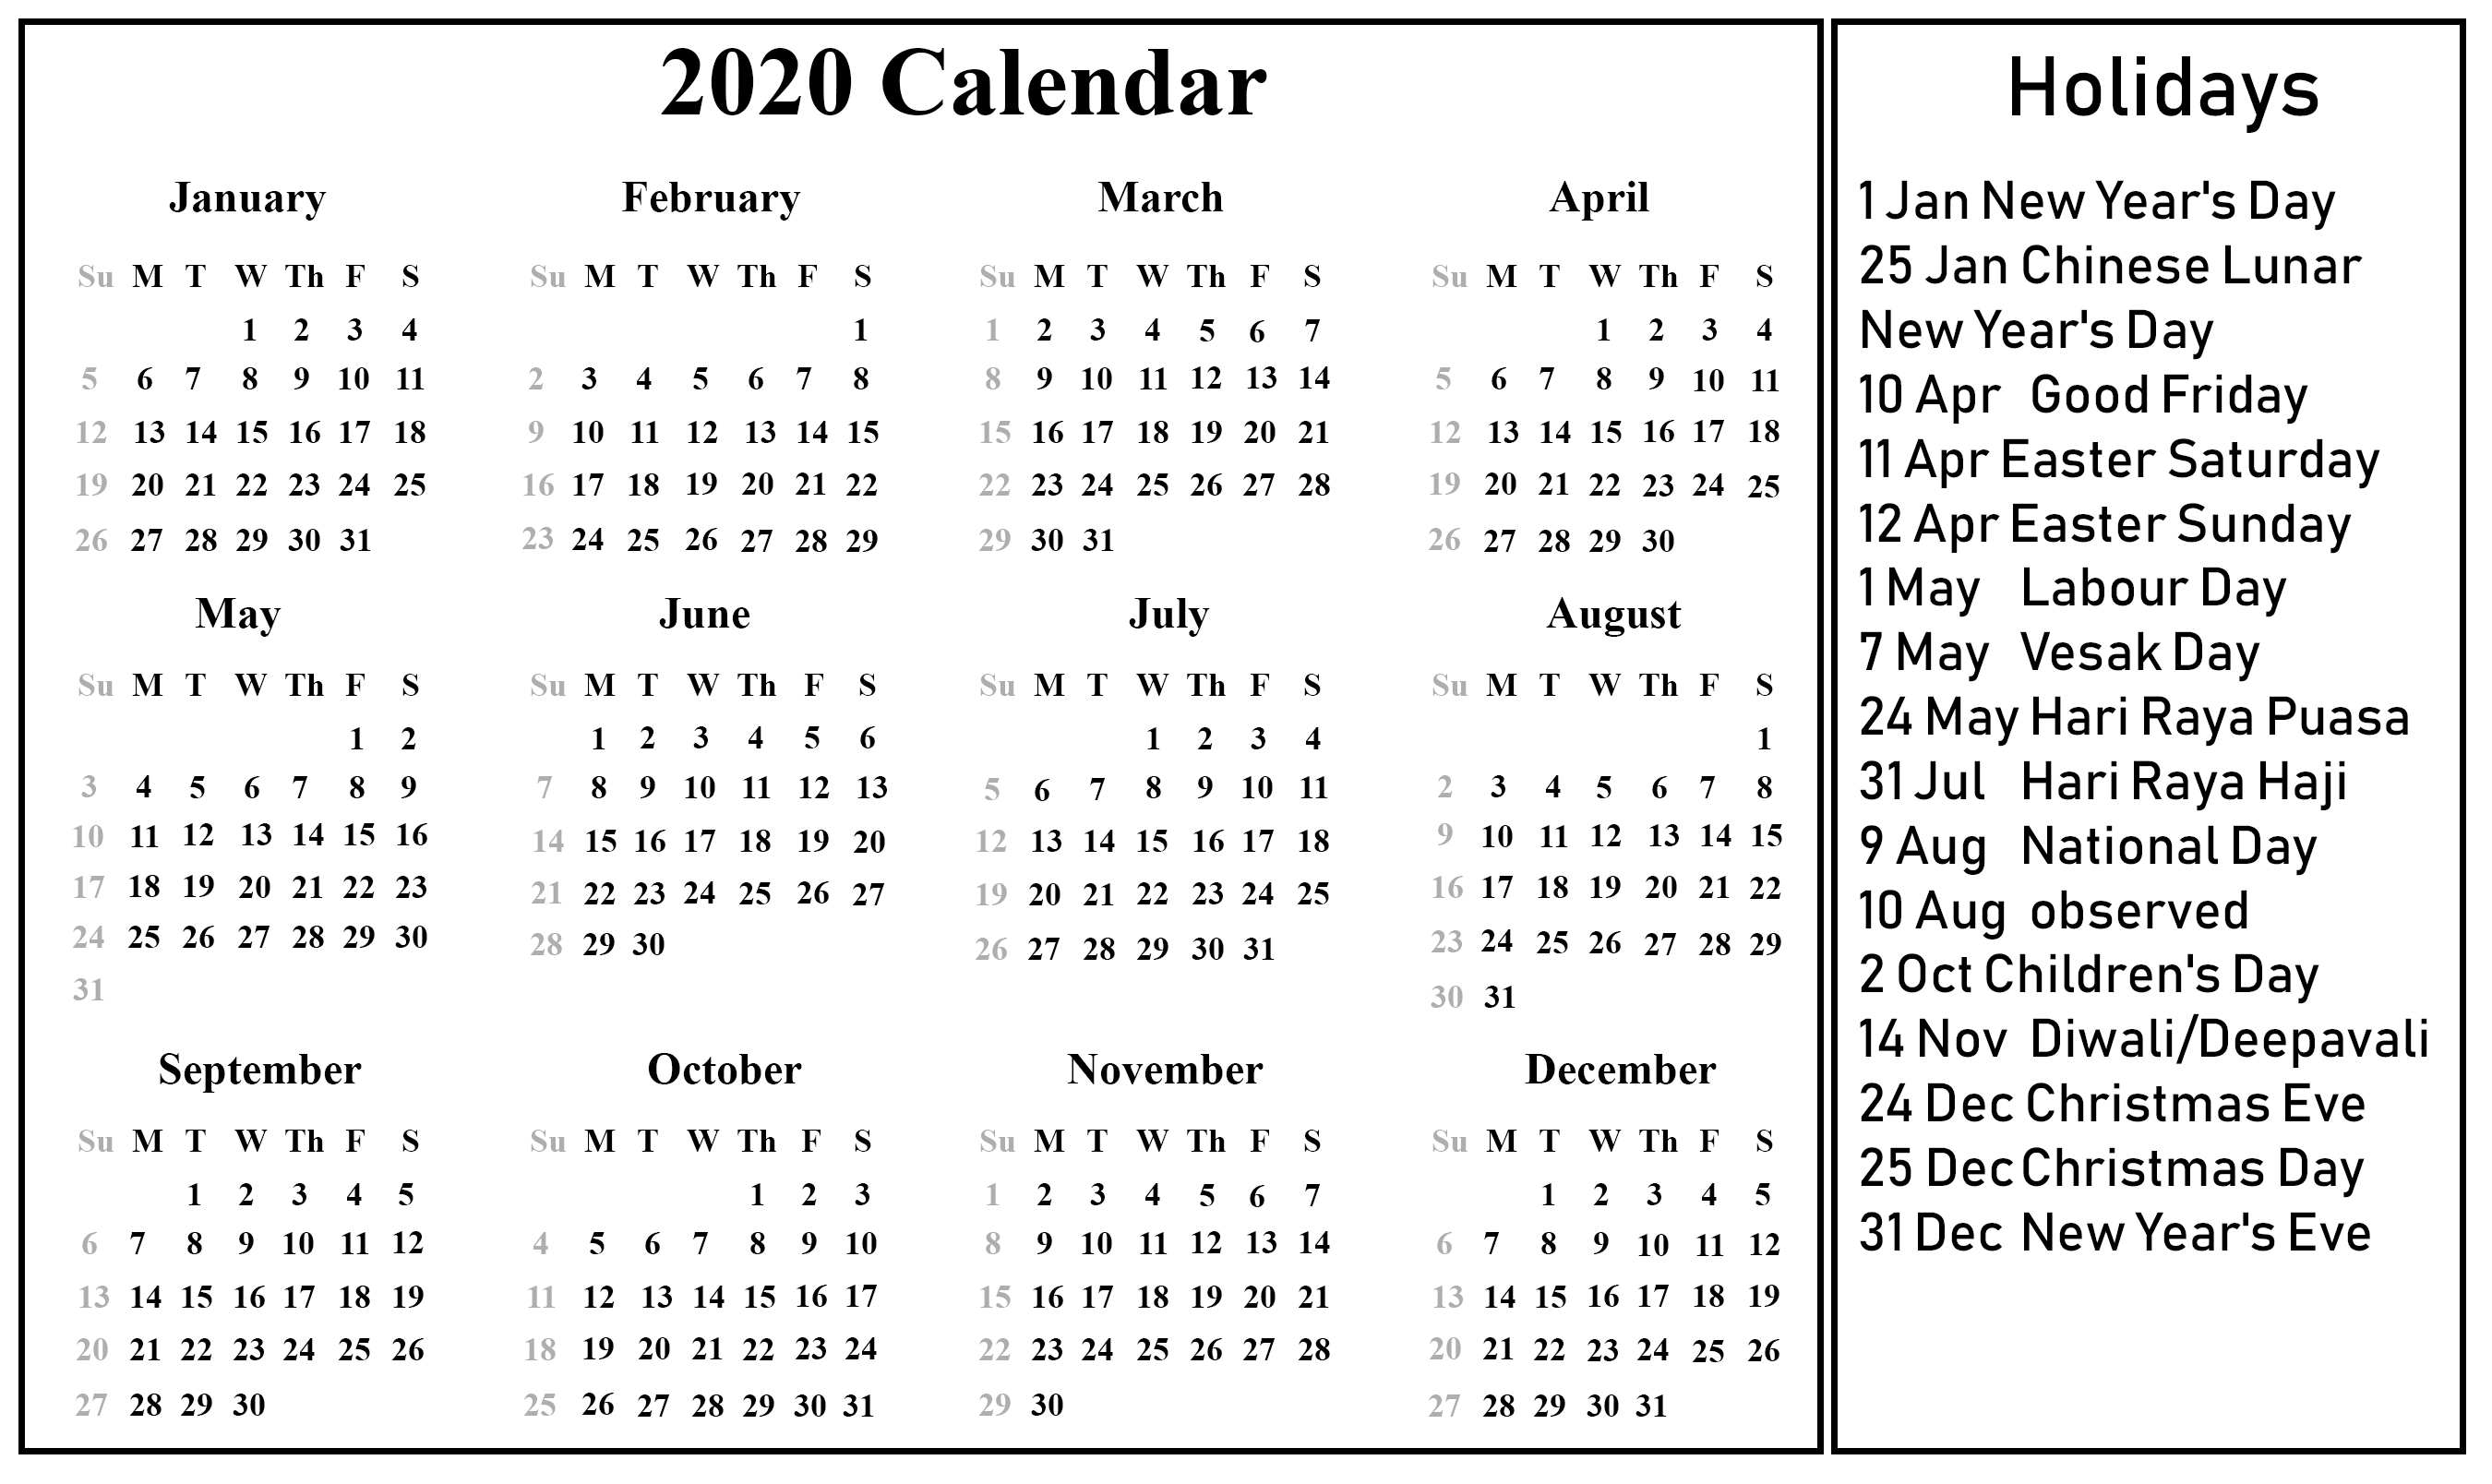 Singapore Calendar 2020 Printable | Printable April Calendar regarding National Day Calendar June 2020